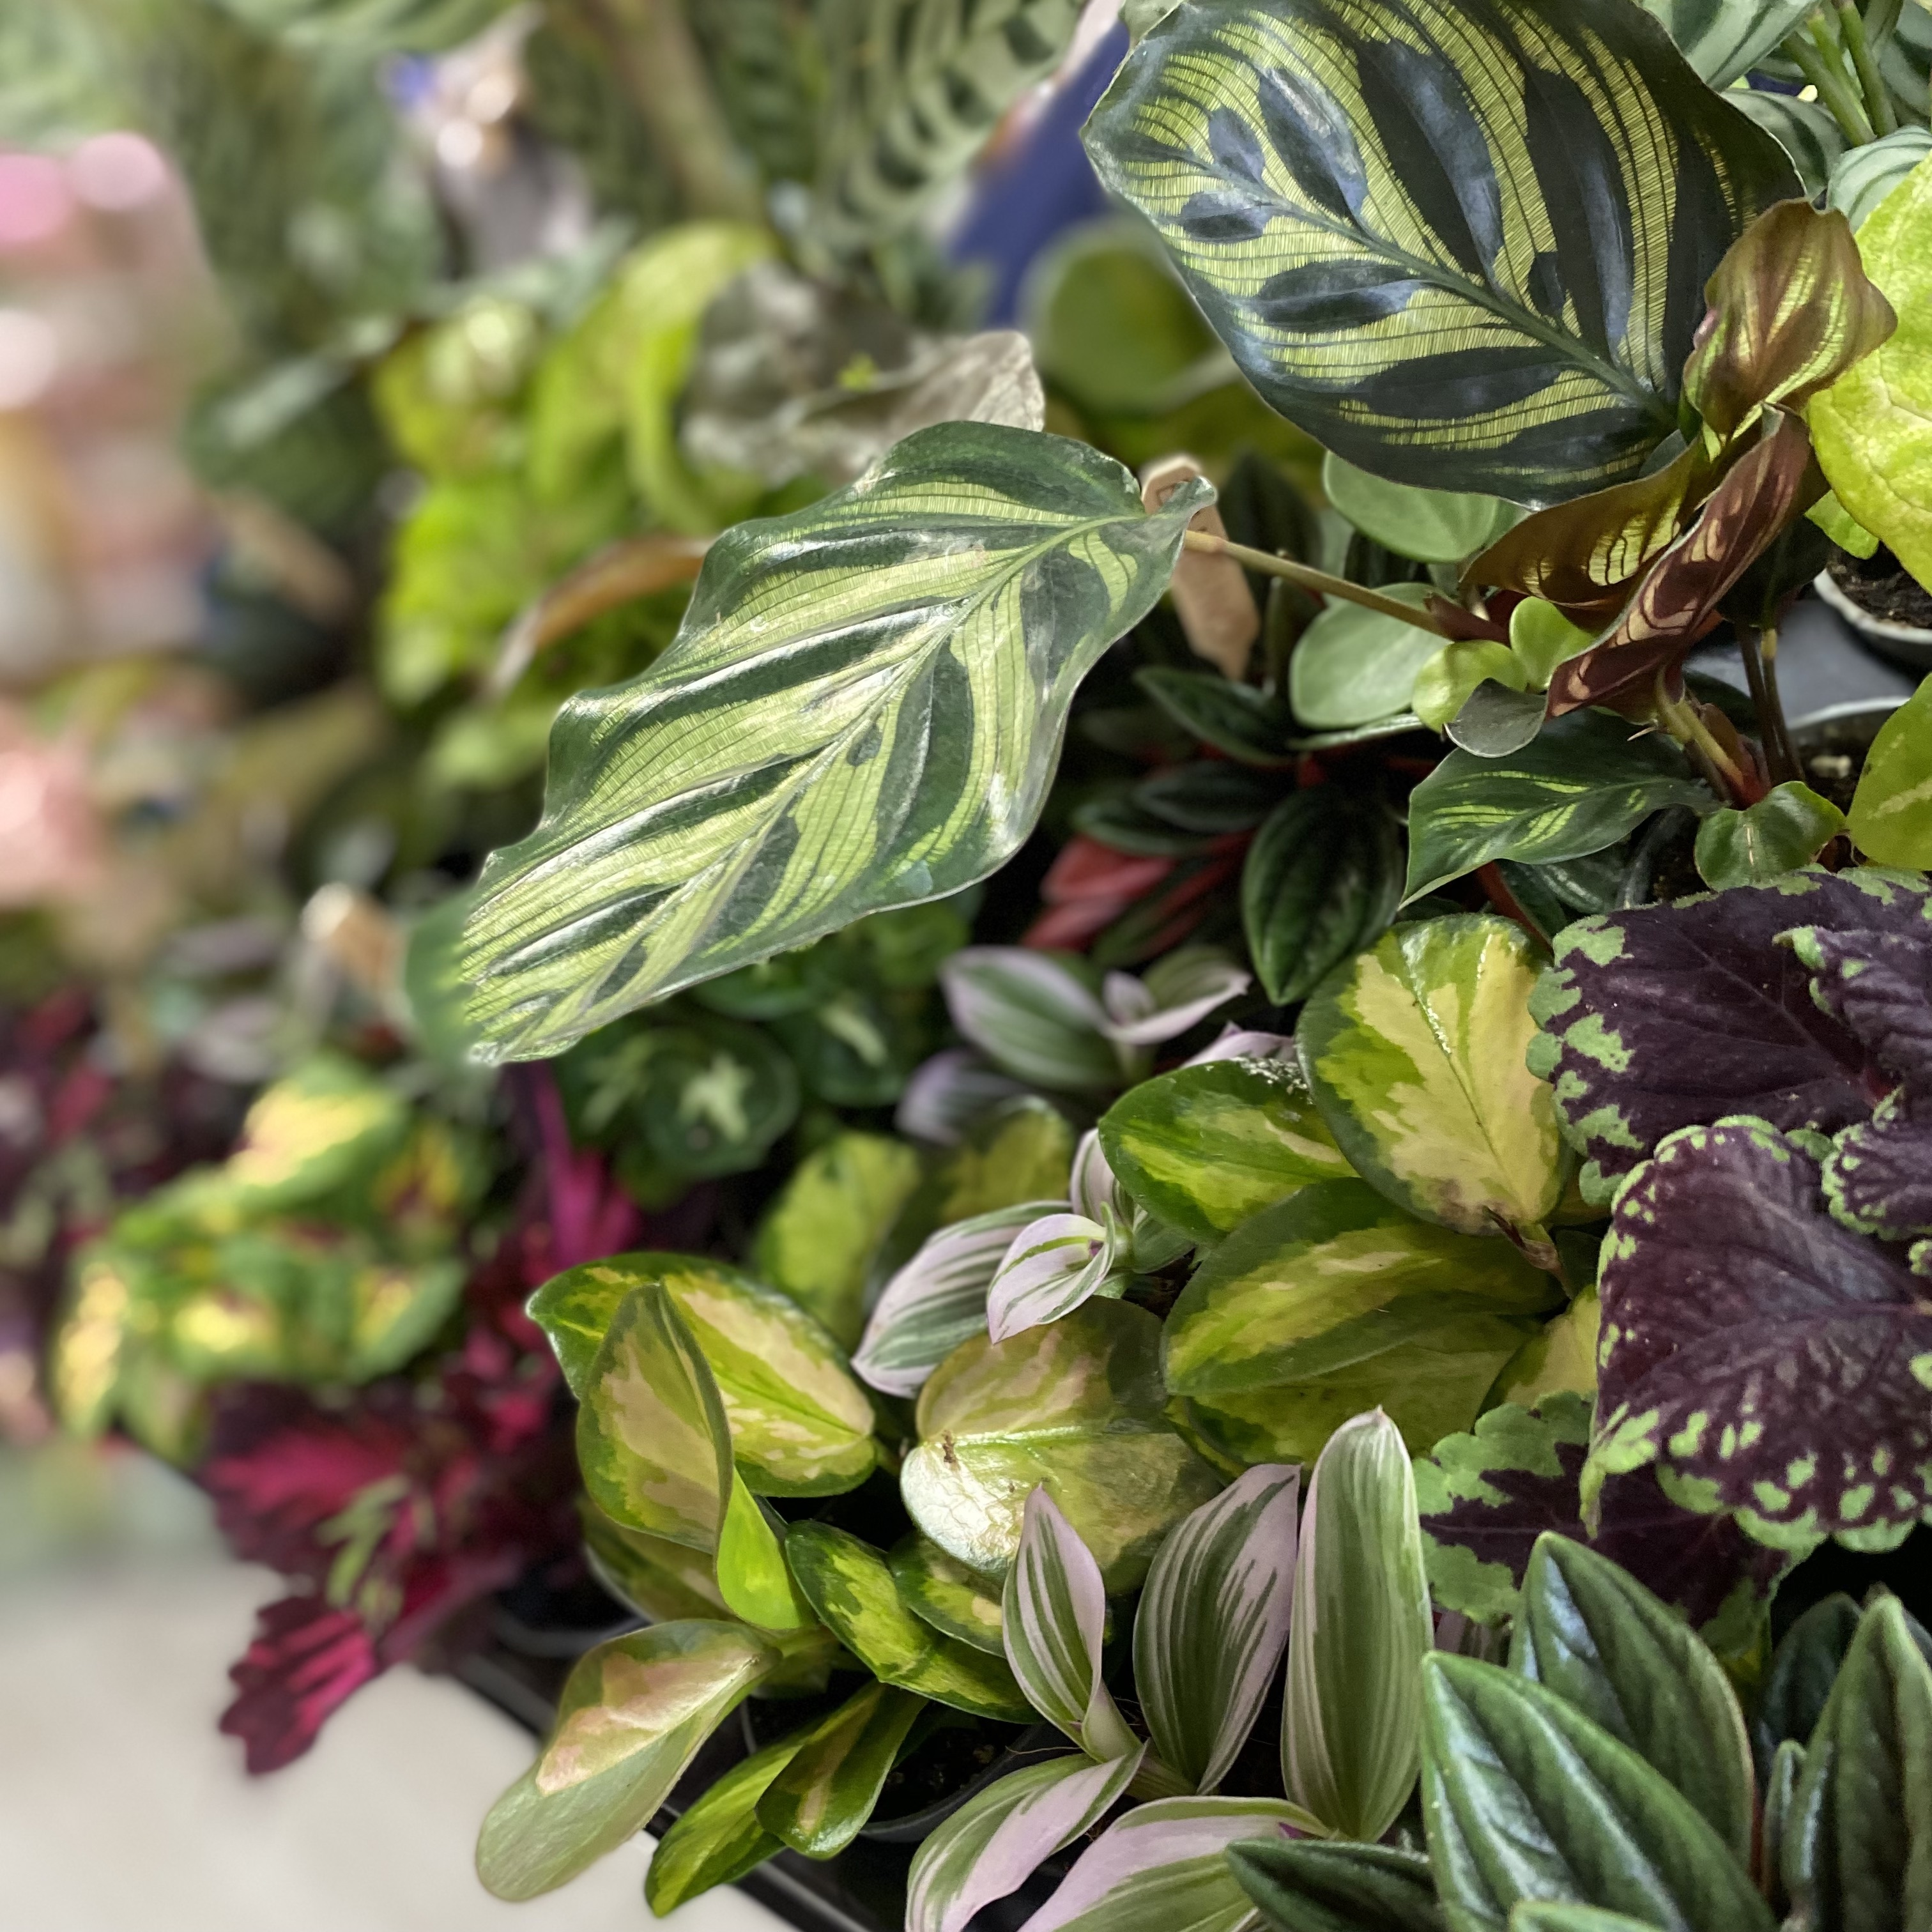 Pick & Mix Miniature Plants in a plastic-free selection box